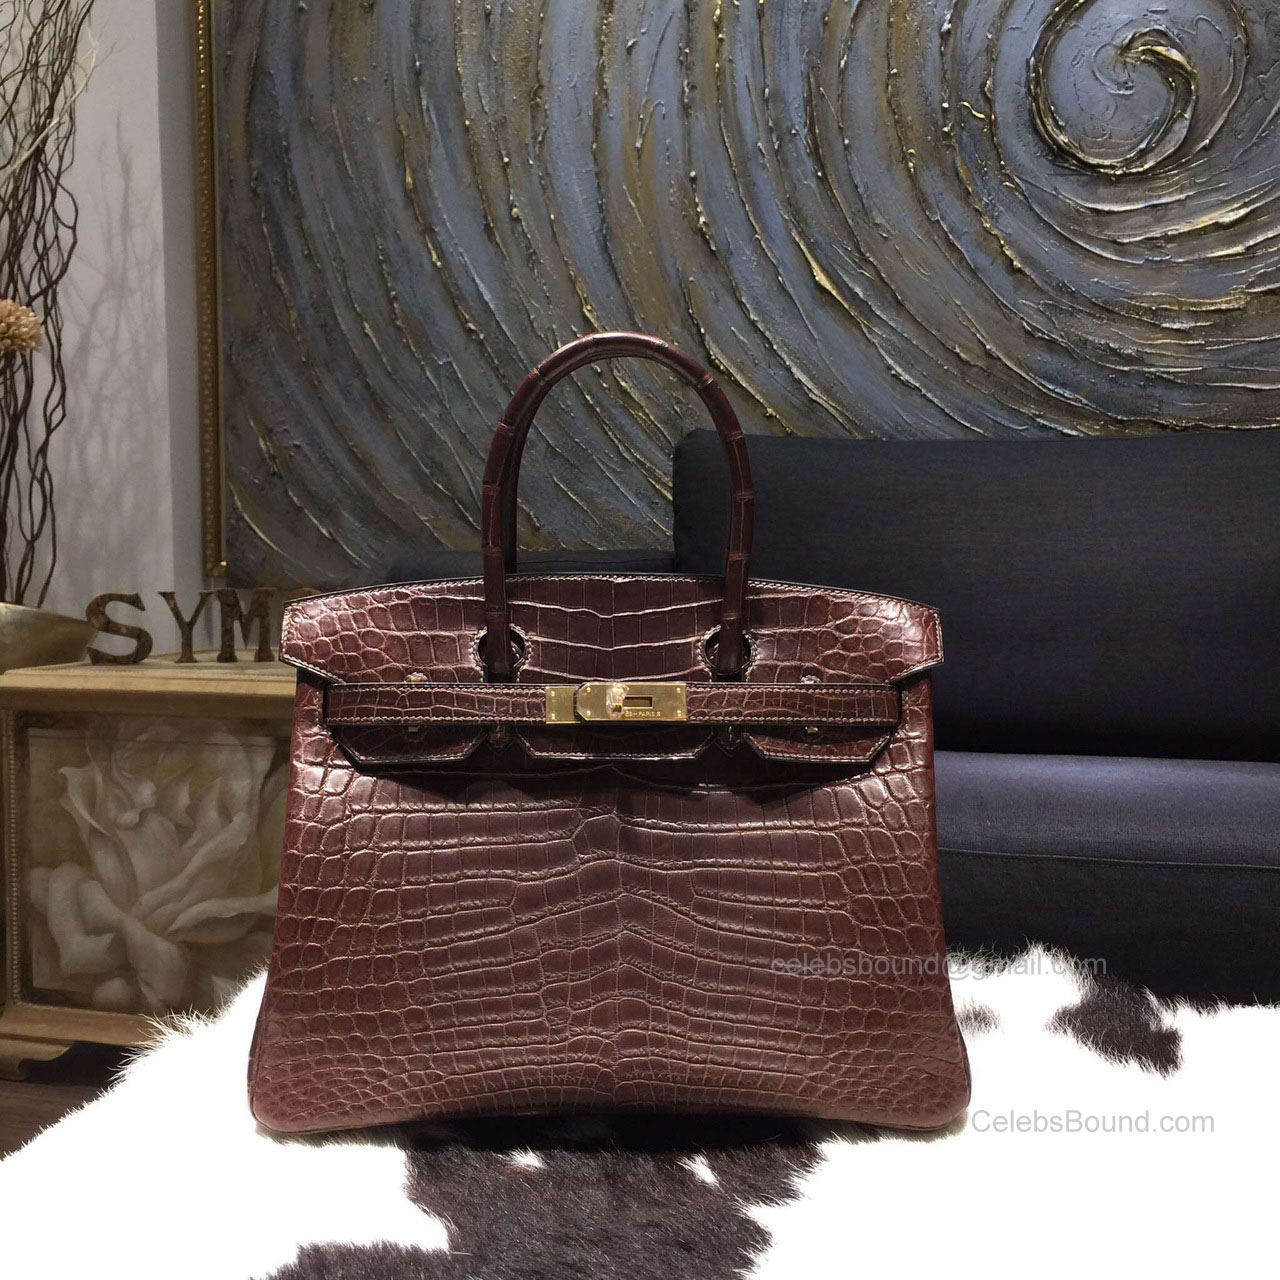 Hermes Birkin 30 Bag Chocolat Crocodile Leather Handstitched Gold hw eda6295327c90